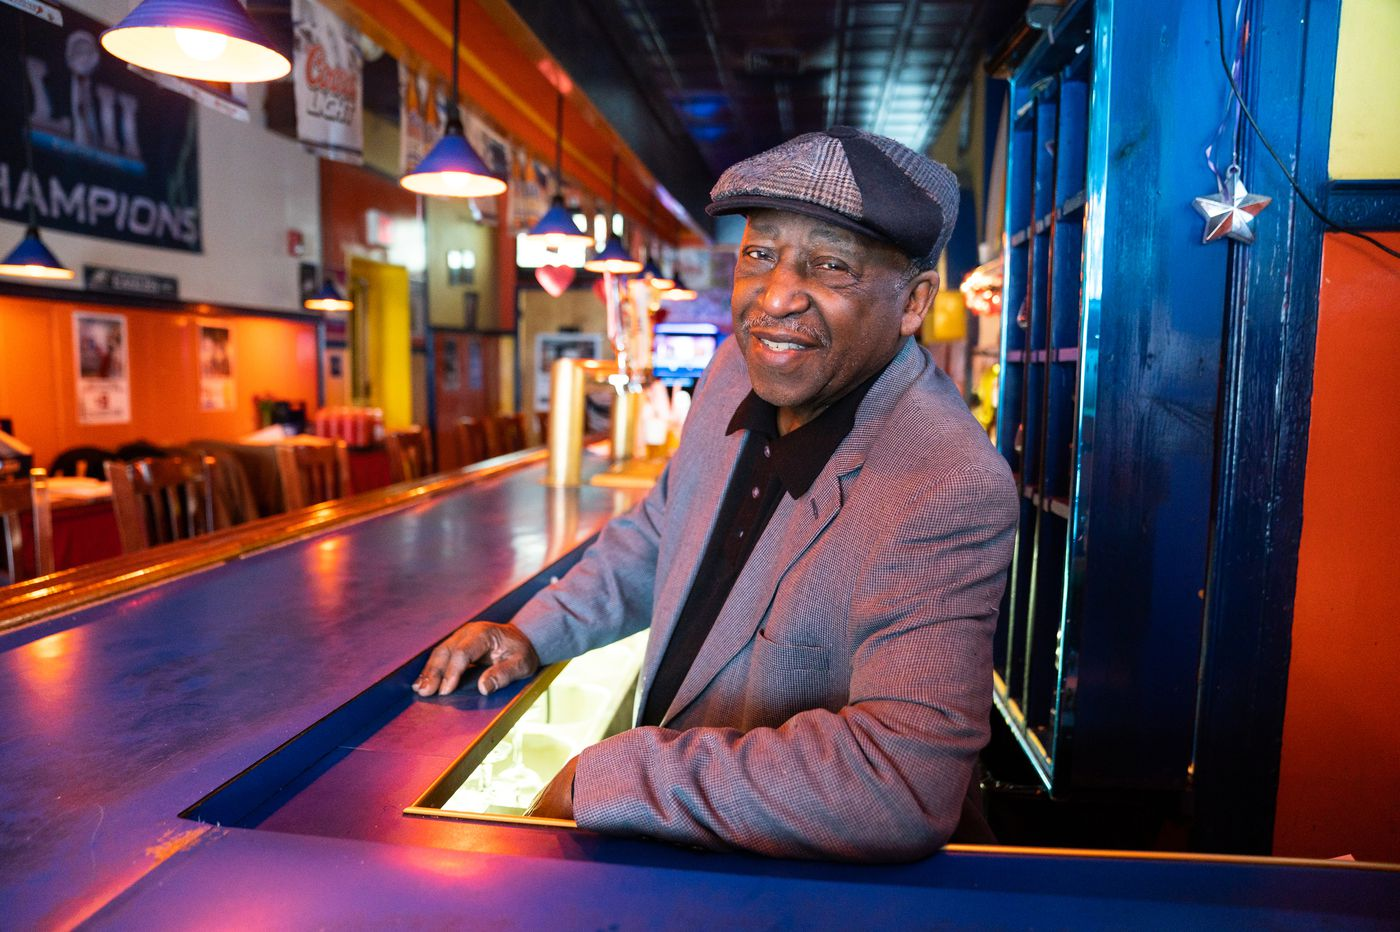 This North Philly bar near Temple hosted legends like Coltrane and Patti LaBelle, but its owner refuses to sell